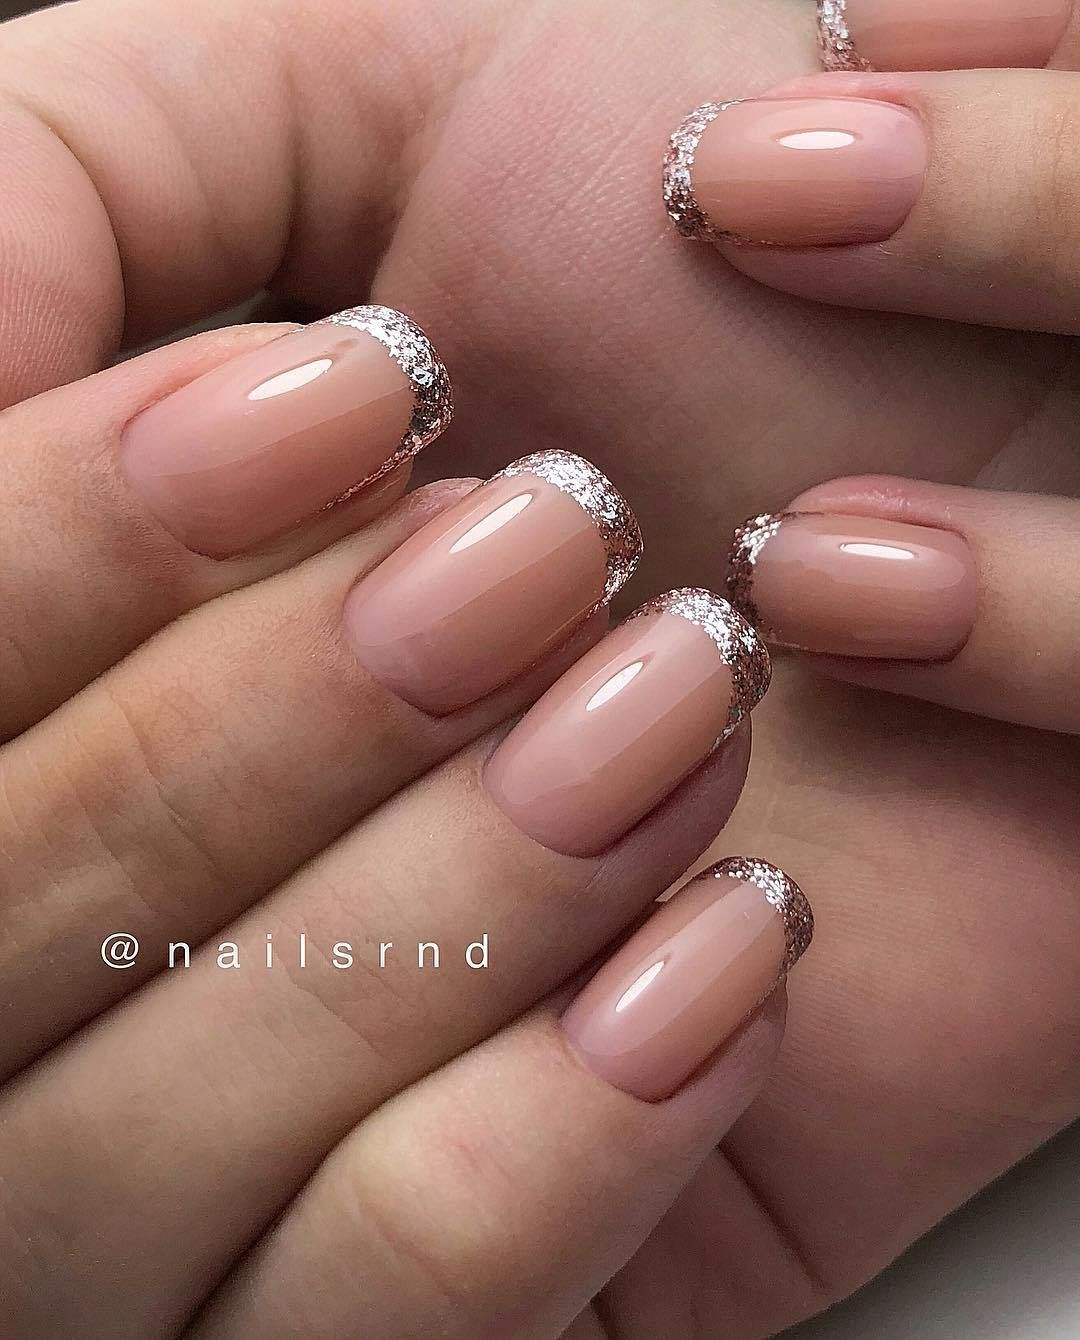 Fabulous Nail Art Design 1 Top Ideas To Try Recipes Hairstyles